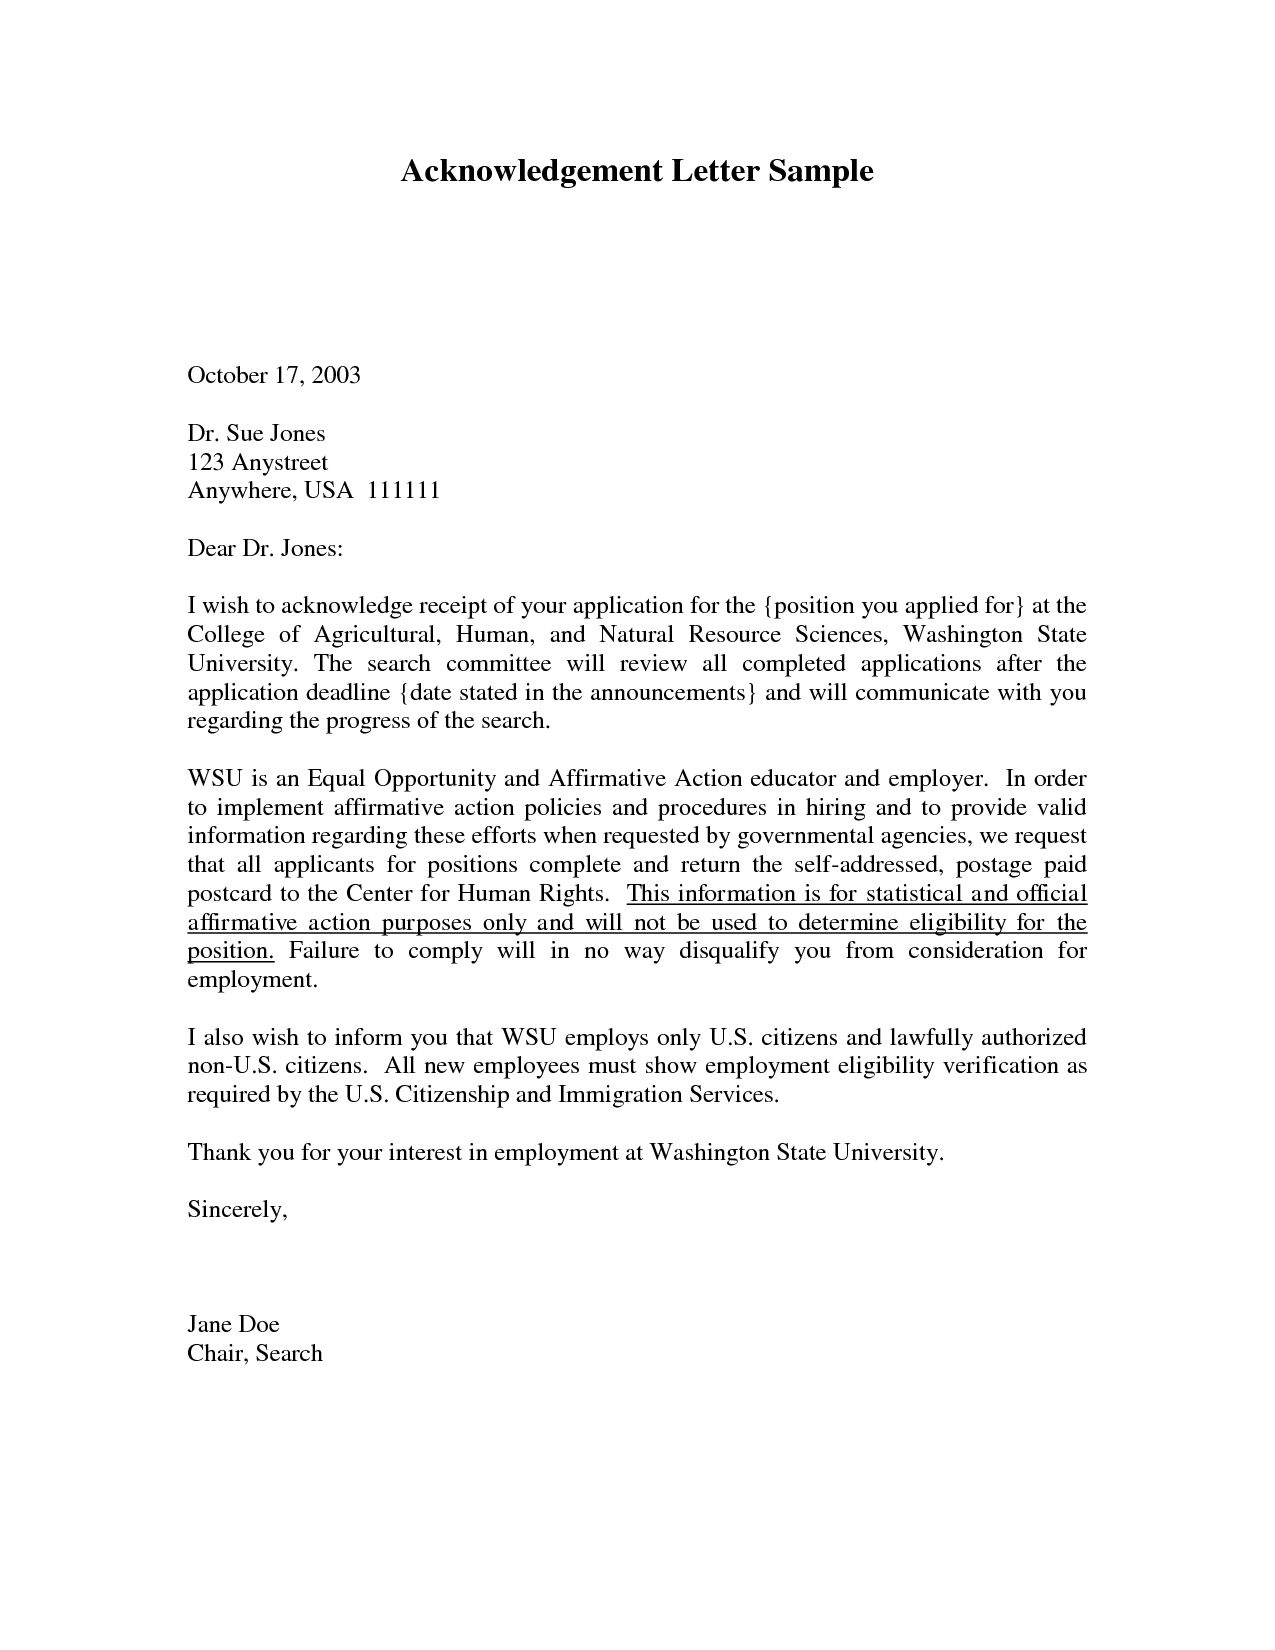 Immigration Recommendation Letter Template - Intent to Marryr High Brilliant Ideas Re Mendation forn